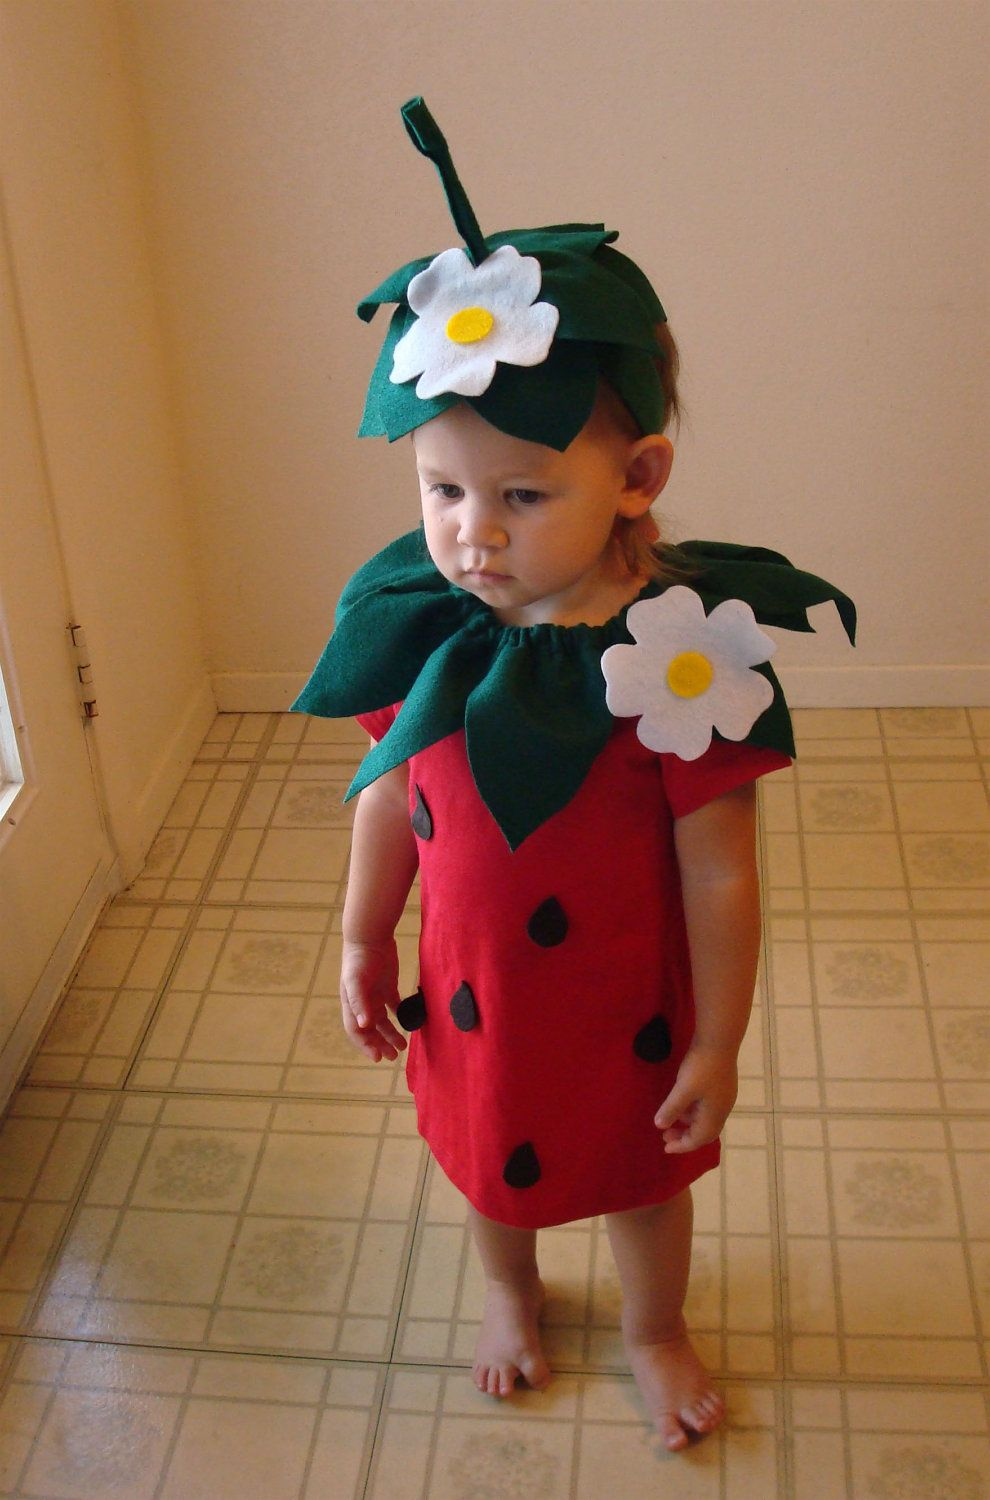 Diy strawberry do it yourself kids costume halloween costume diy strawberry do it yourself kids costume halloween costume strawberry costume 3500 via etsy solutioingenieria Gallery